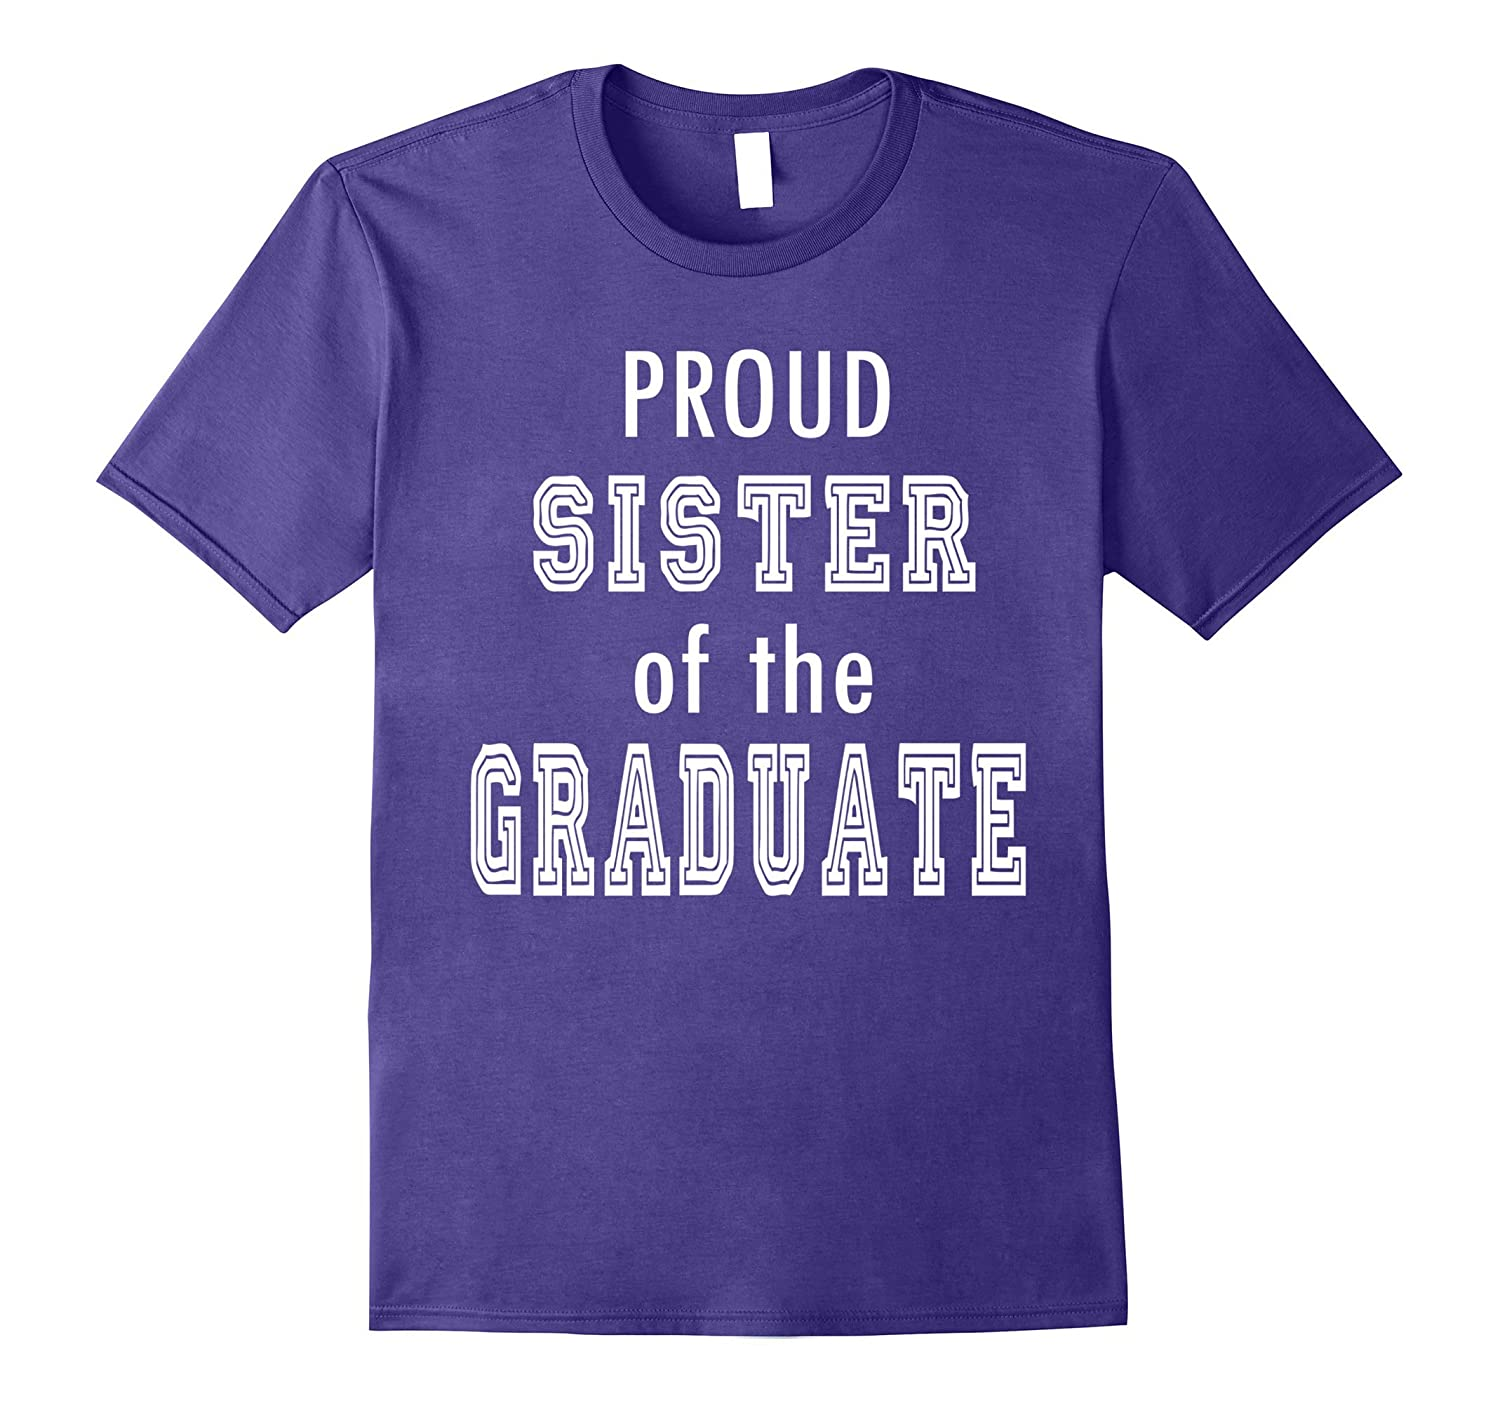 PROUD Sister of the Graduate Family School Graduation Tee-TH